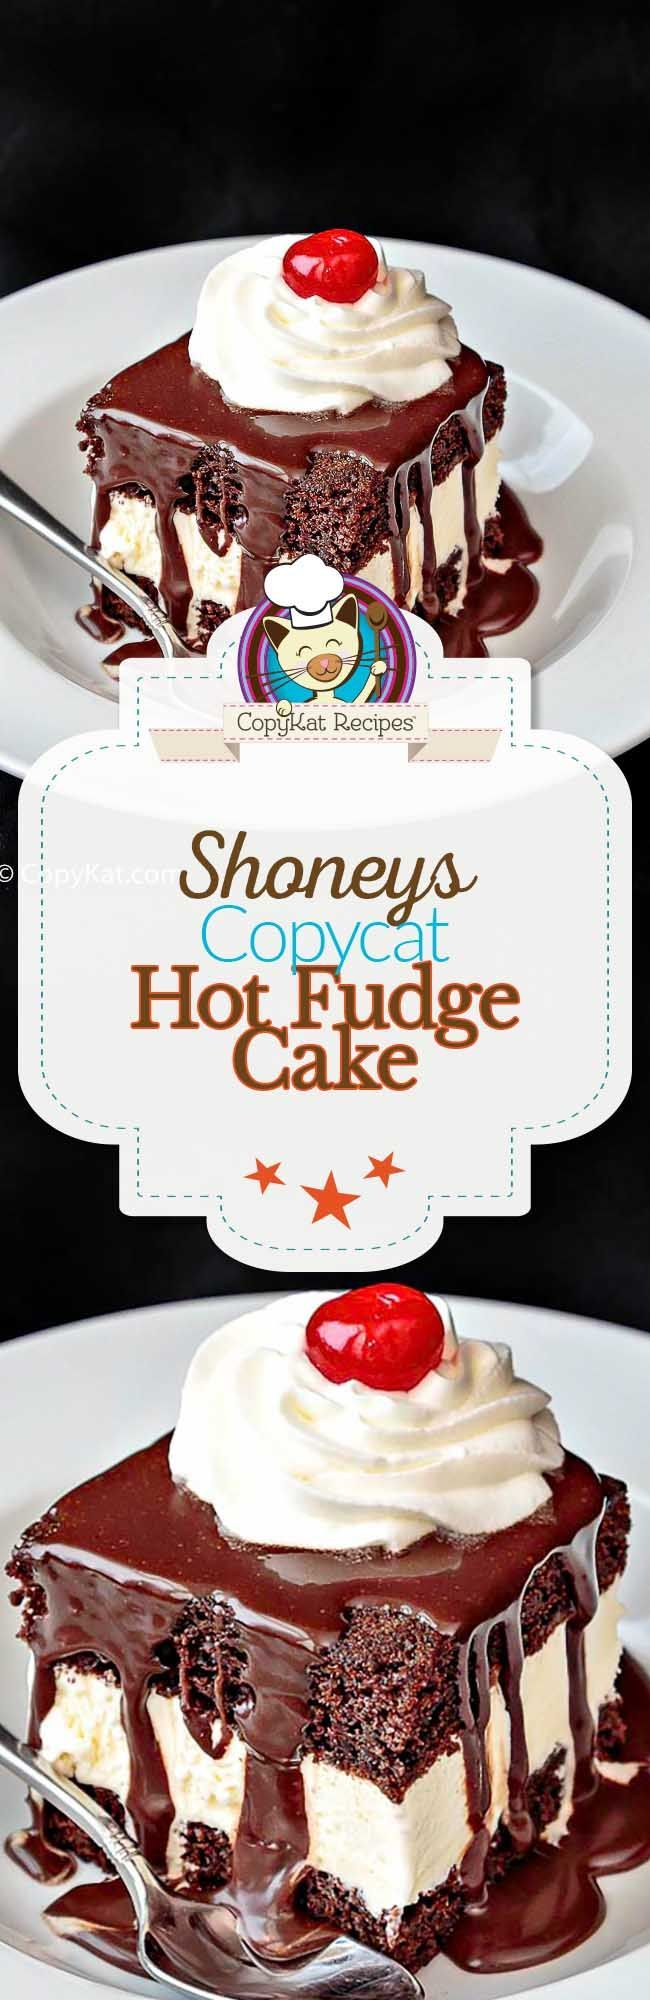 You can recreate the famous Shoney's Hot Fudge Cake at home with this easy copycat recipe.